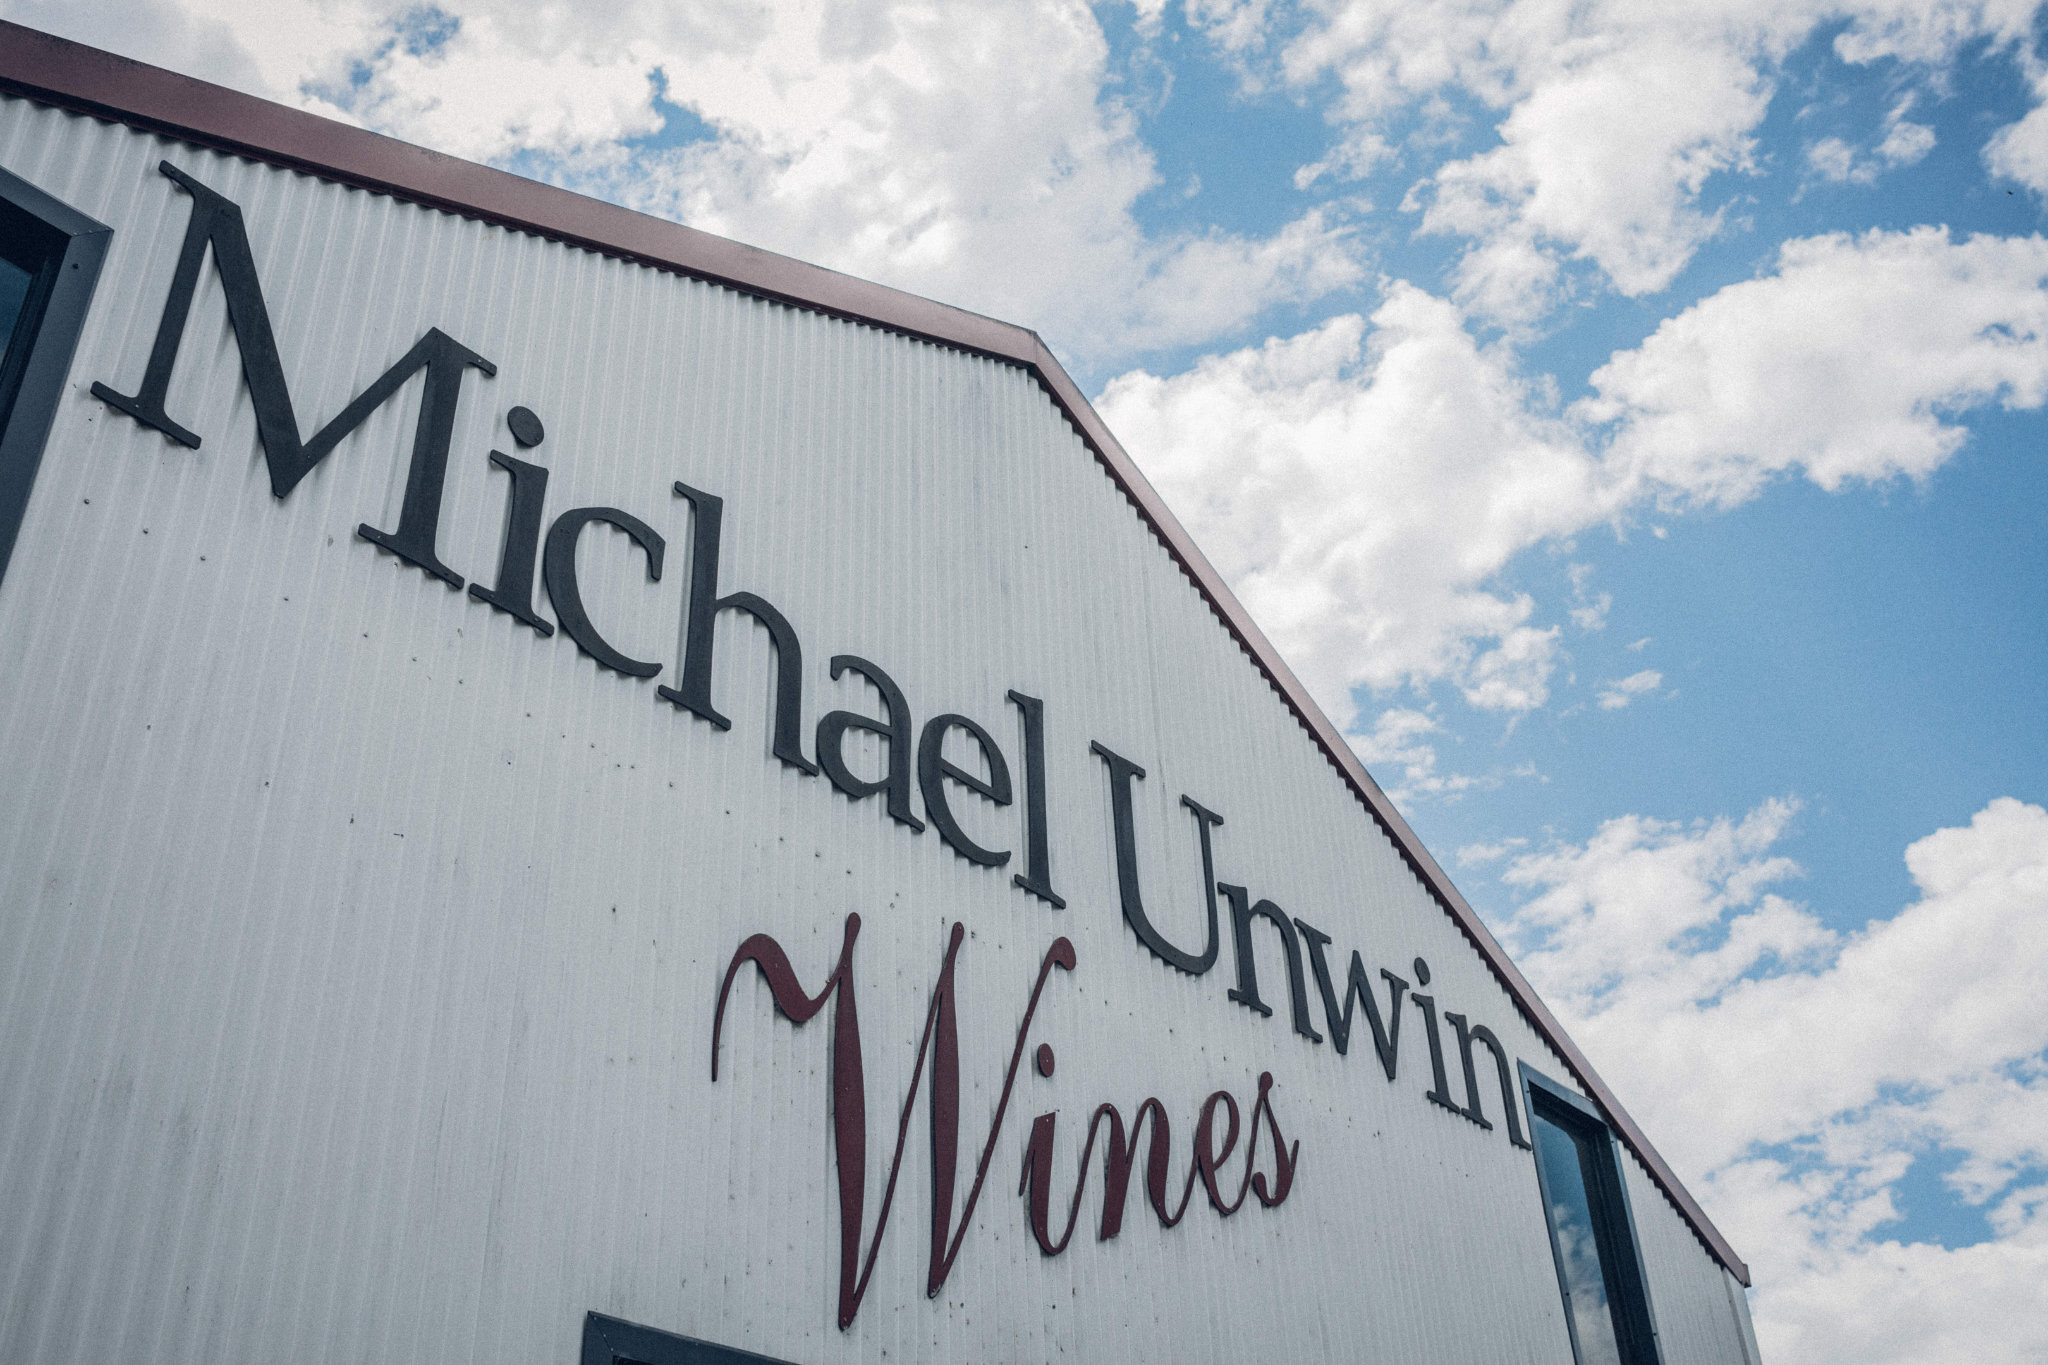 Michael Unwin Wines Front Shed